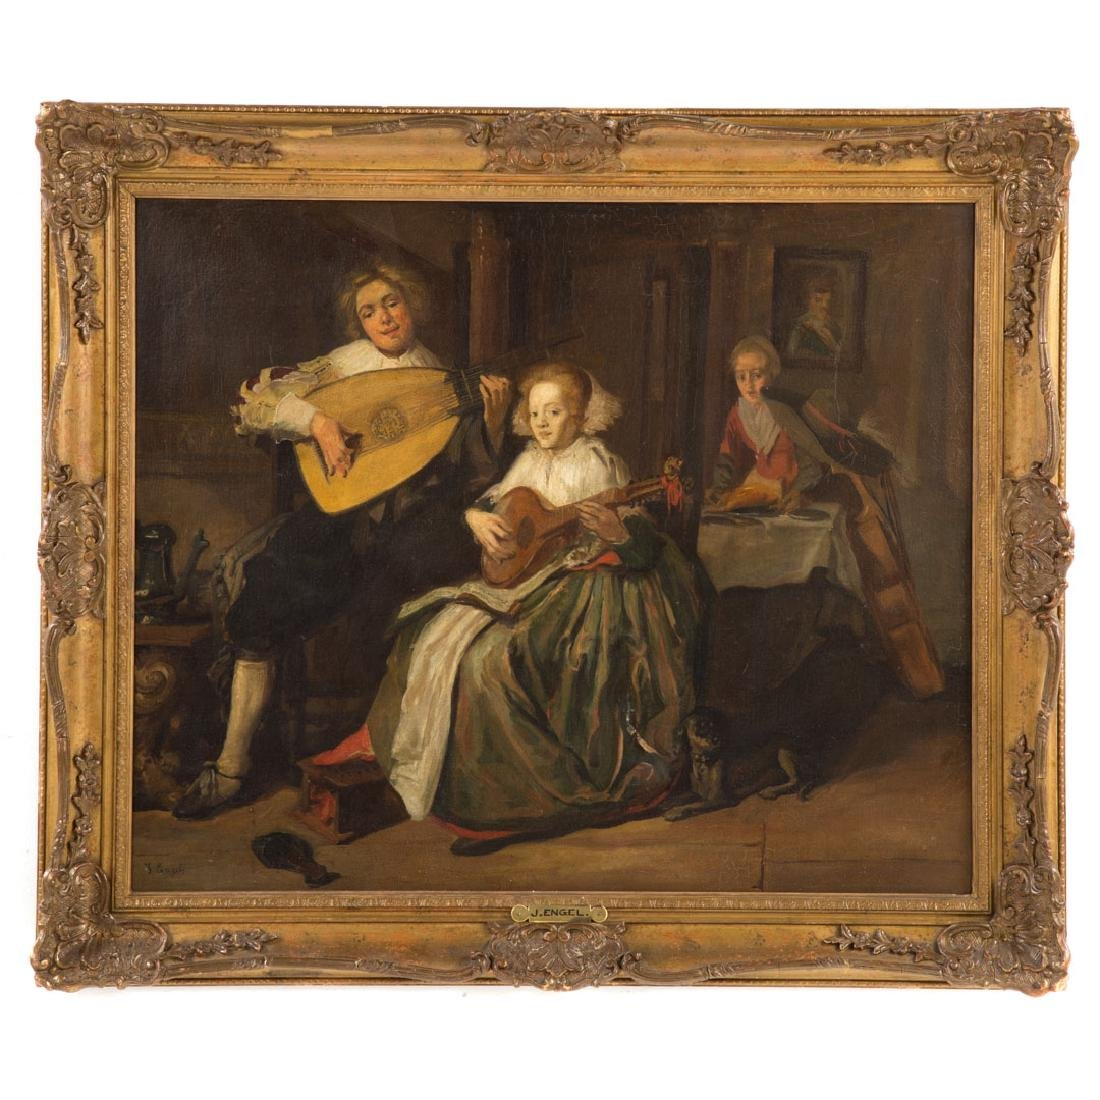 J. Engel. The Concert, oil on canvas